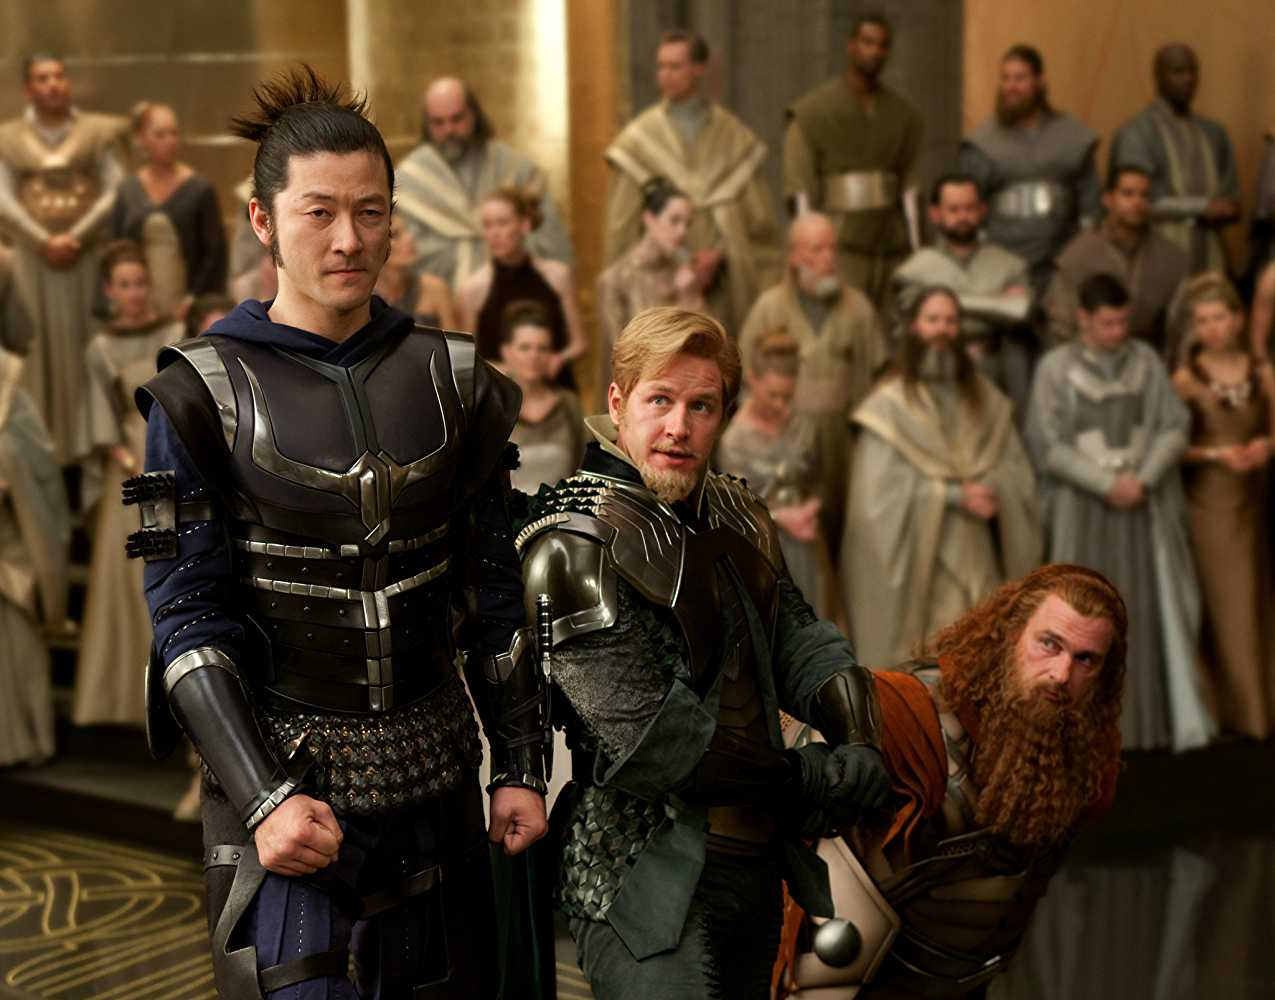 Dallas played Fandral the Dashing in 2011's 'Thor'. (IMDb)